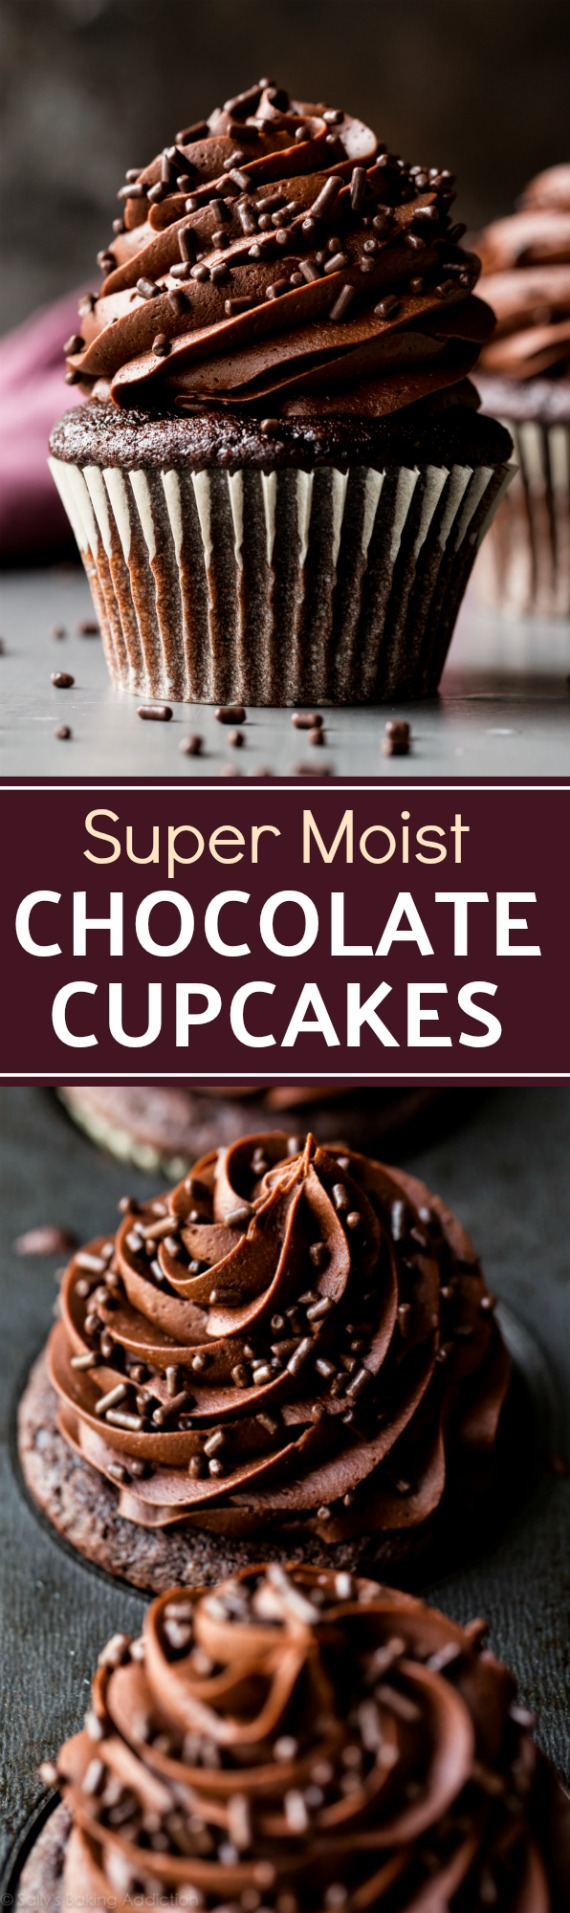 Chocolate cupcake recipe yield 6